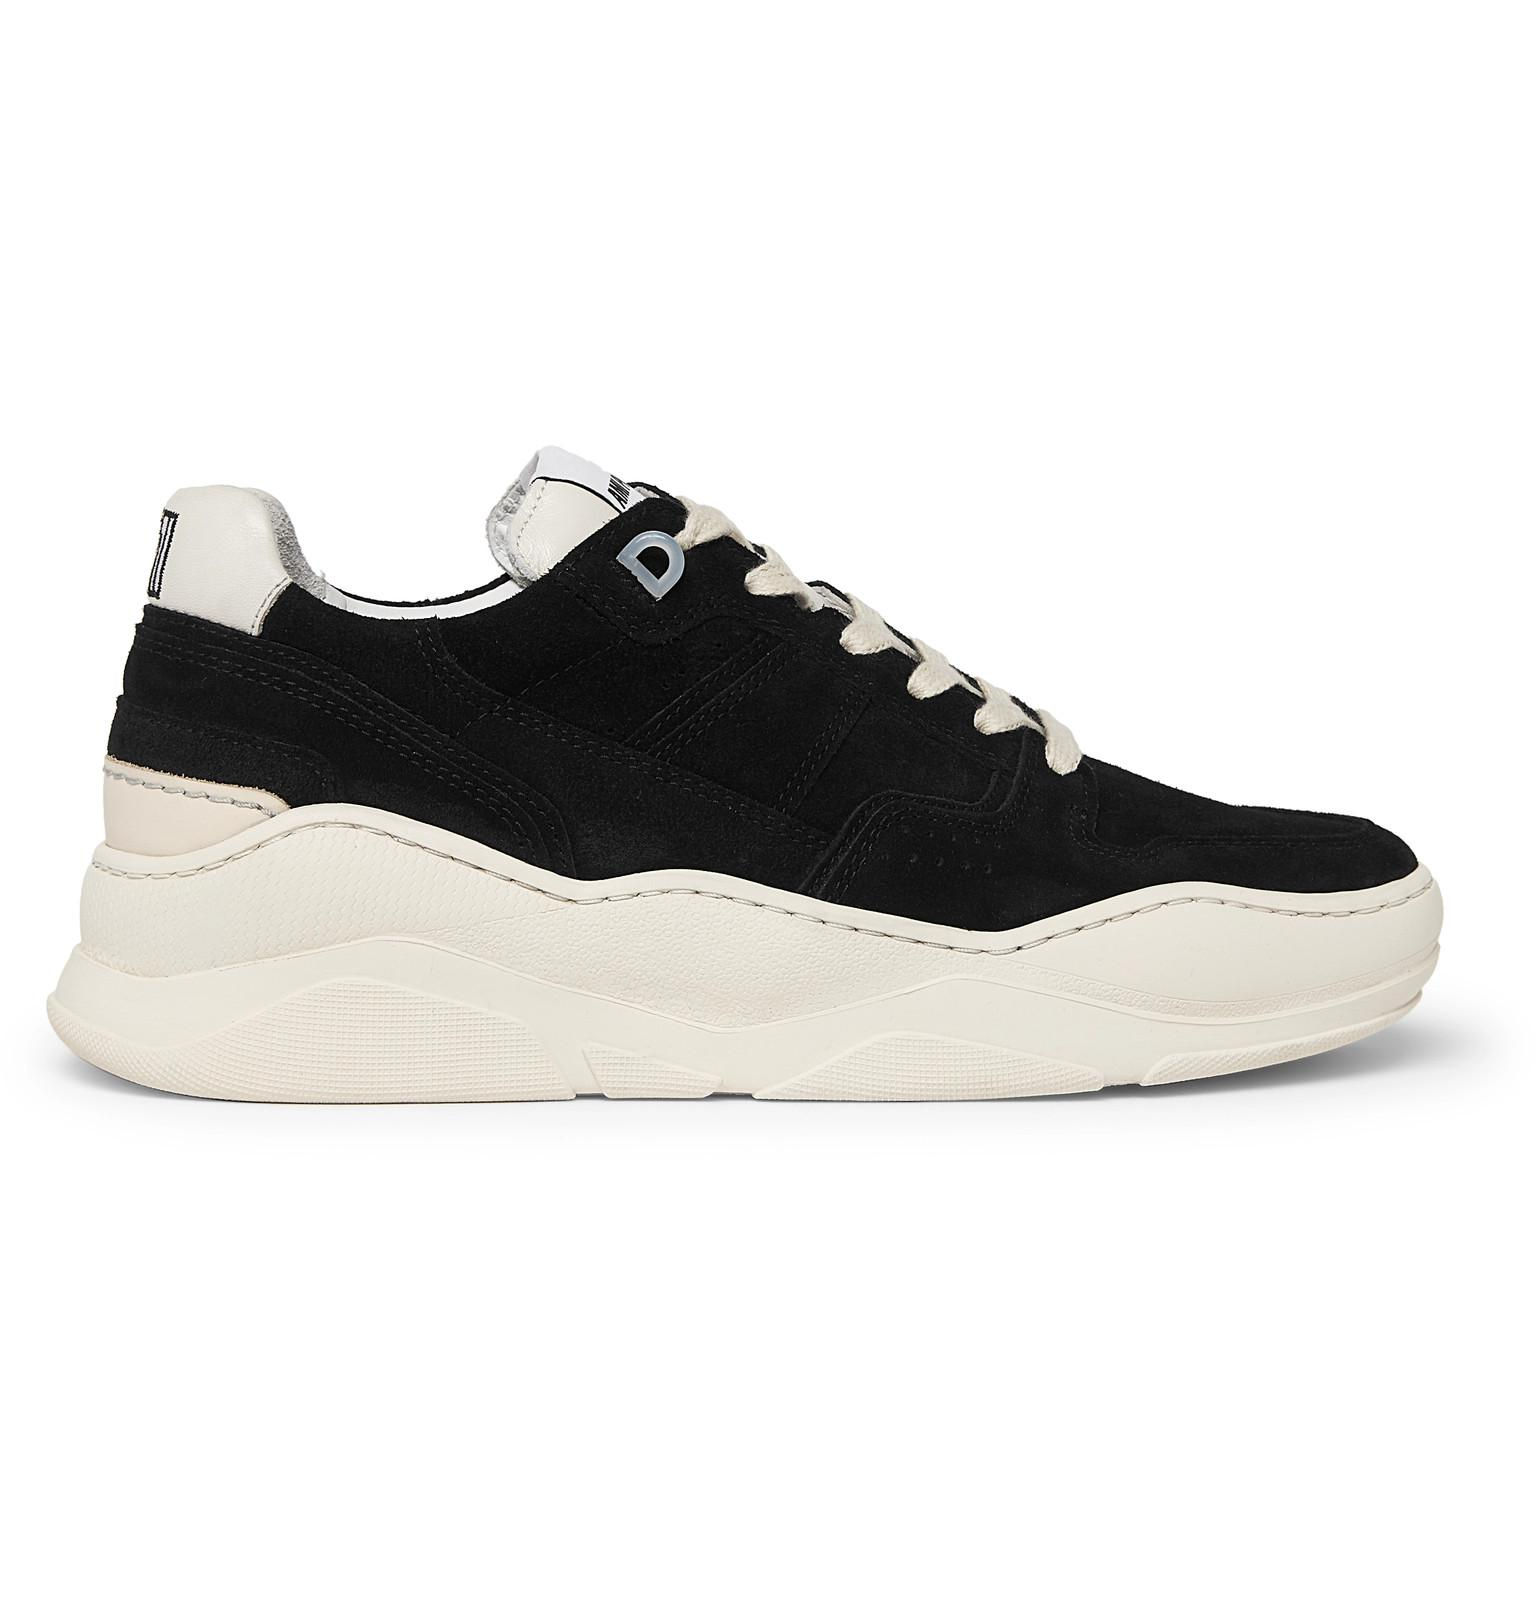 Leather Lyst In Men Sneakers Suede Trimmed Ami Black For 5URwrqUHWX